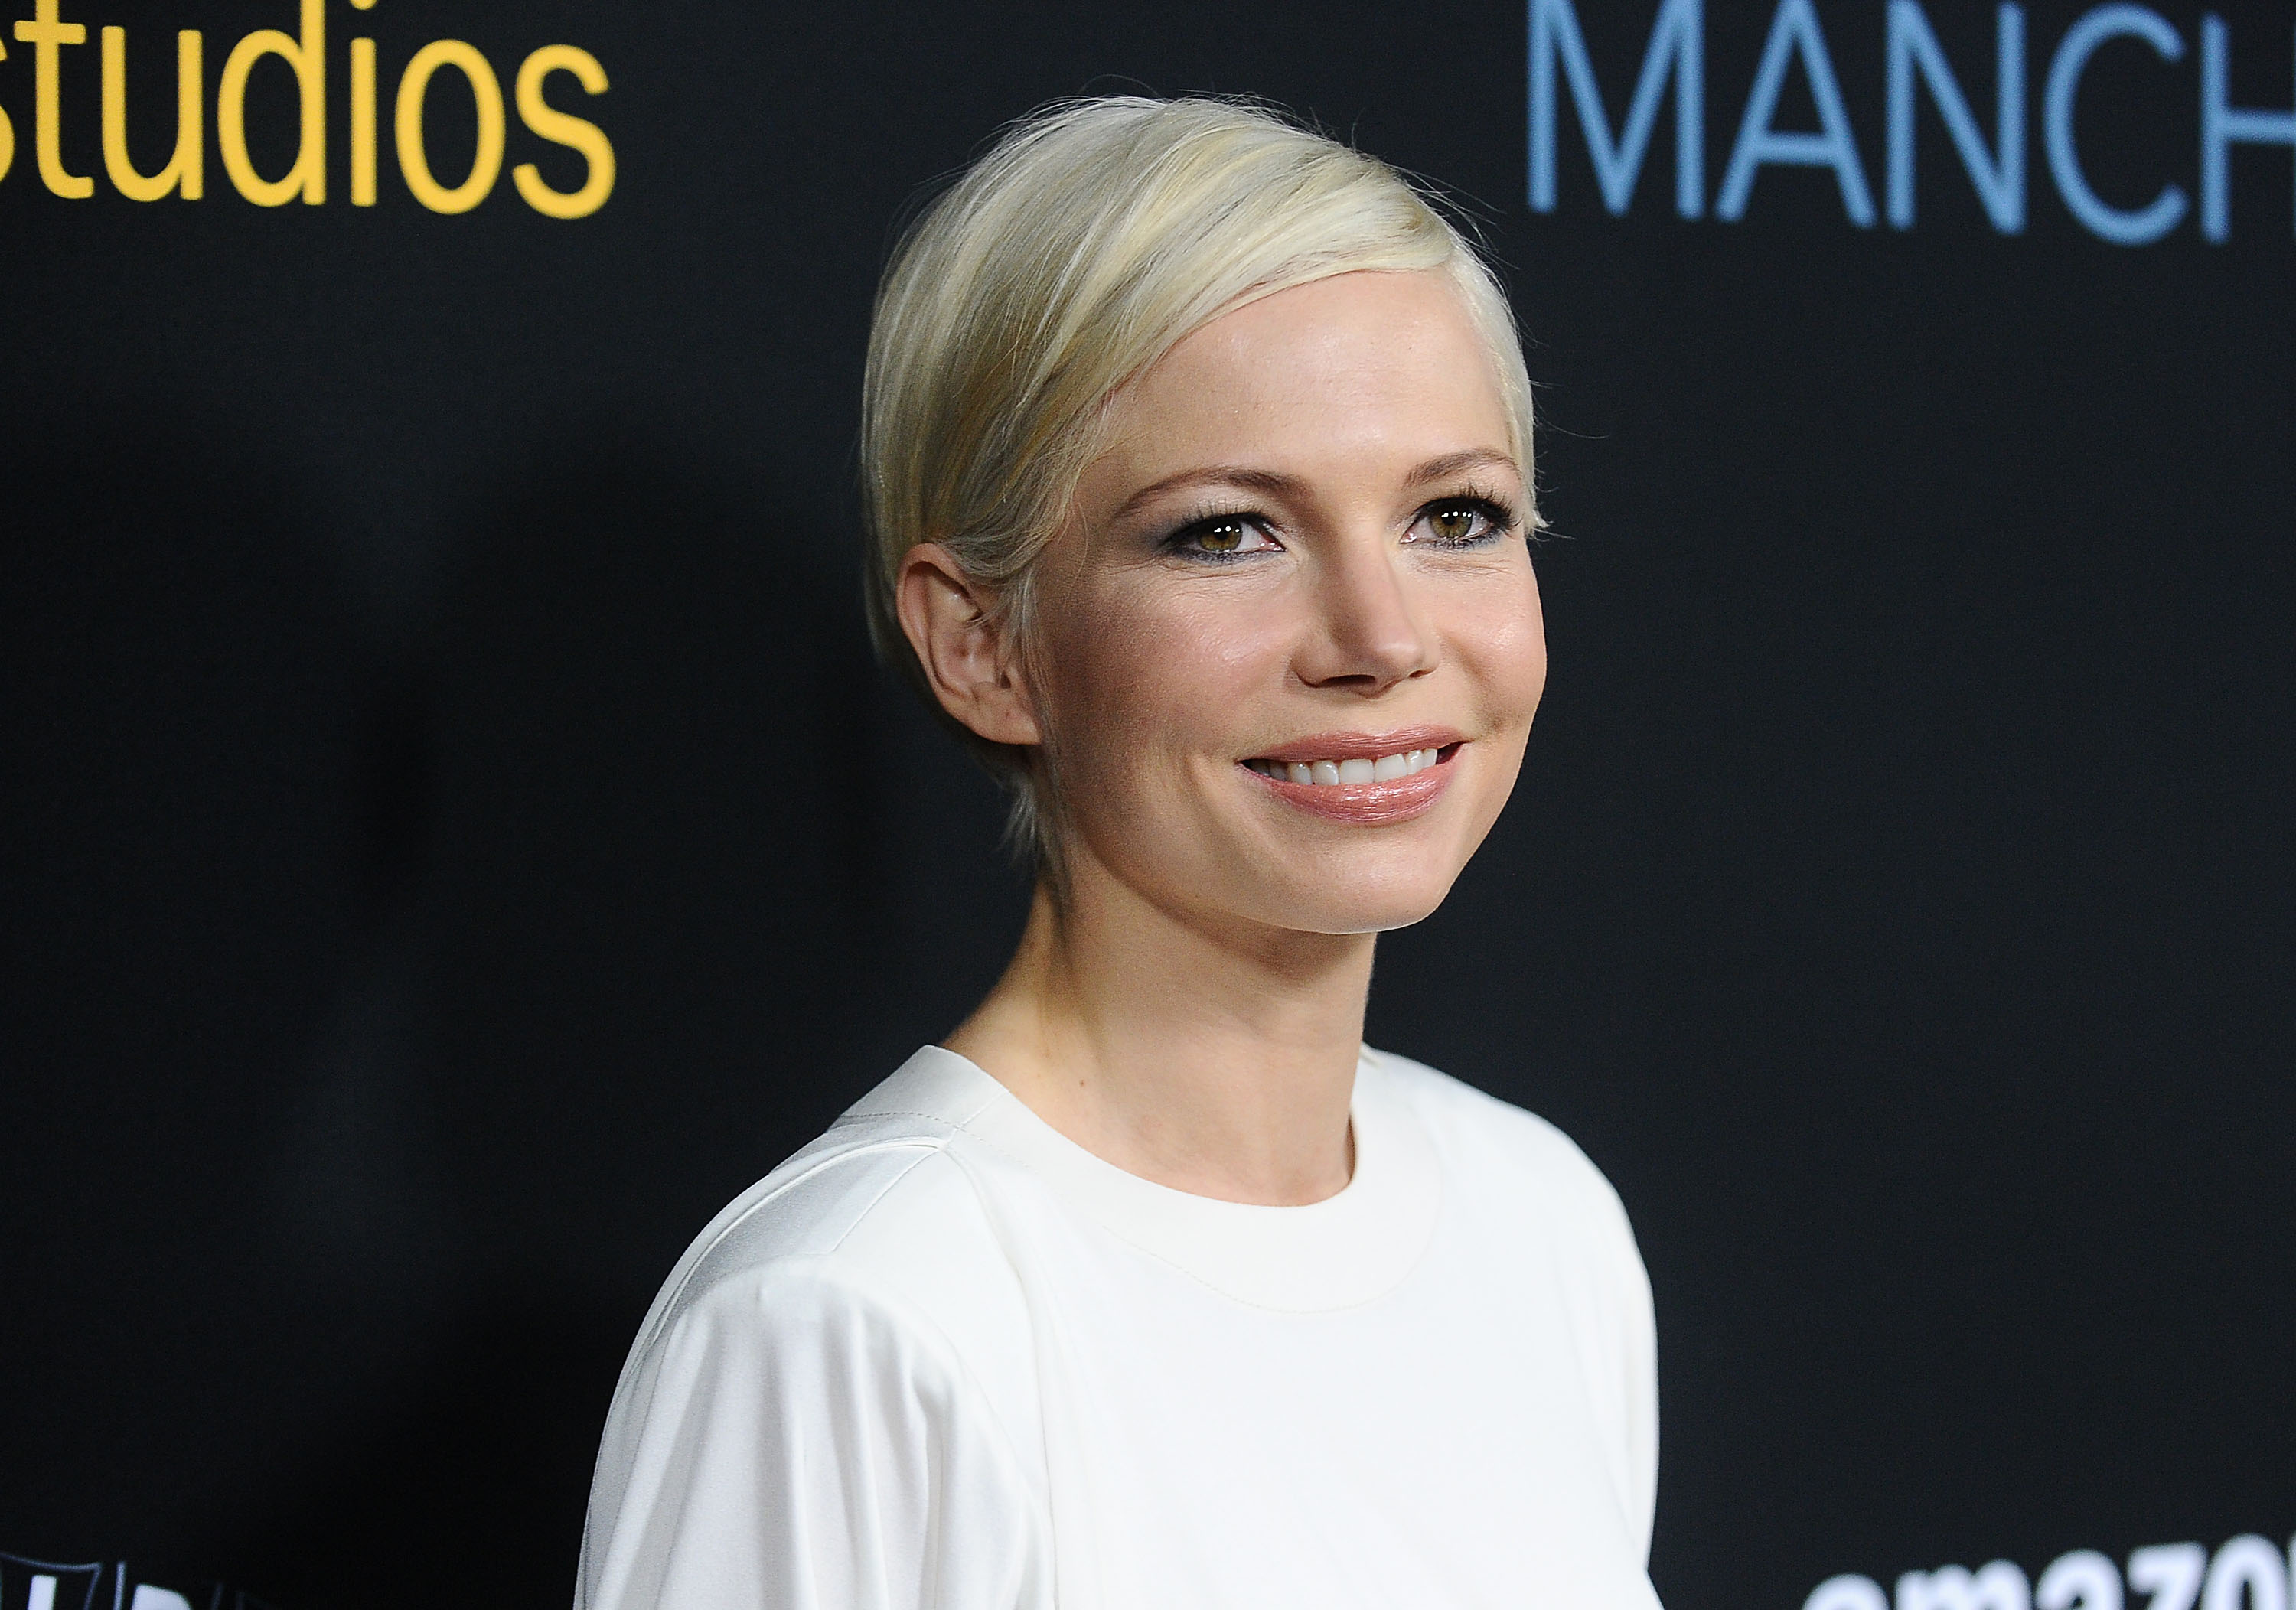 Actress Michelle Williams attends the premiere of  Manchester by the Sea  at Samuel Goldwyn Theater on November 14, 2016 in Beverly Hills, California.